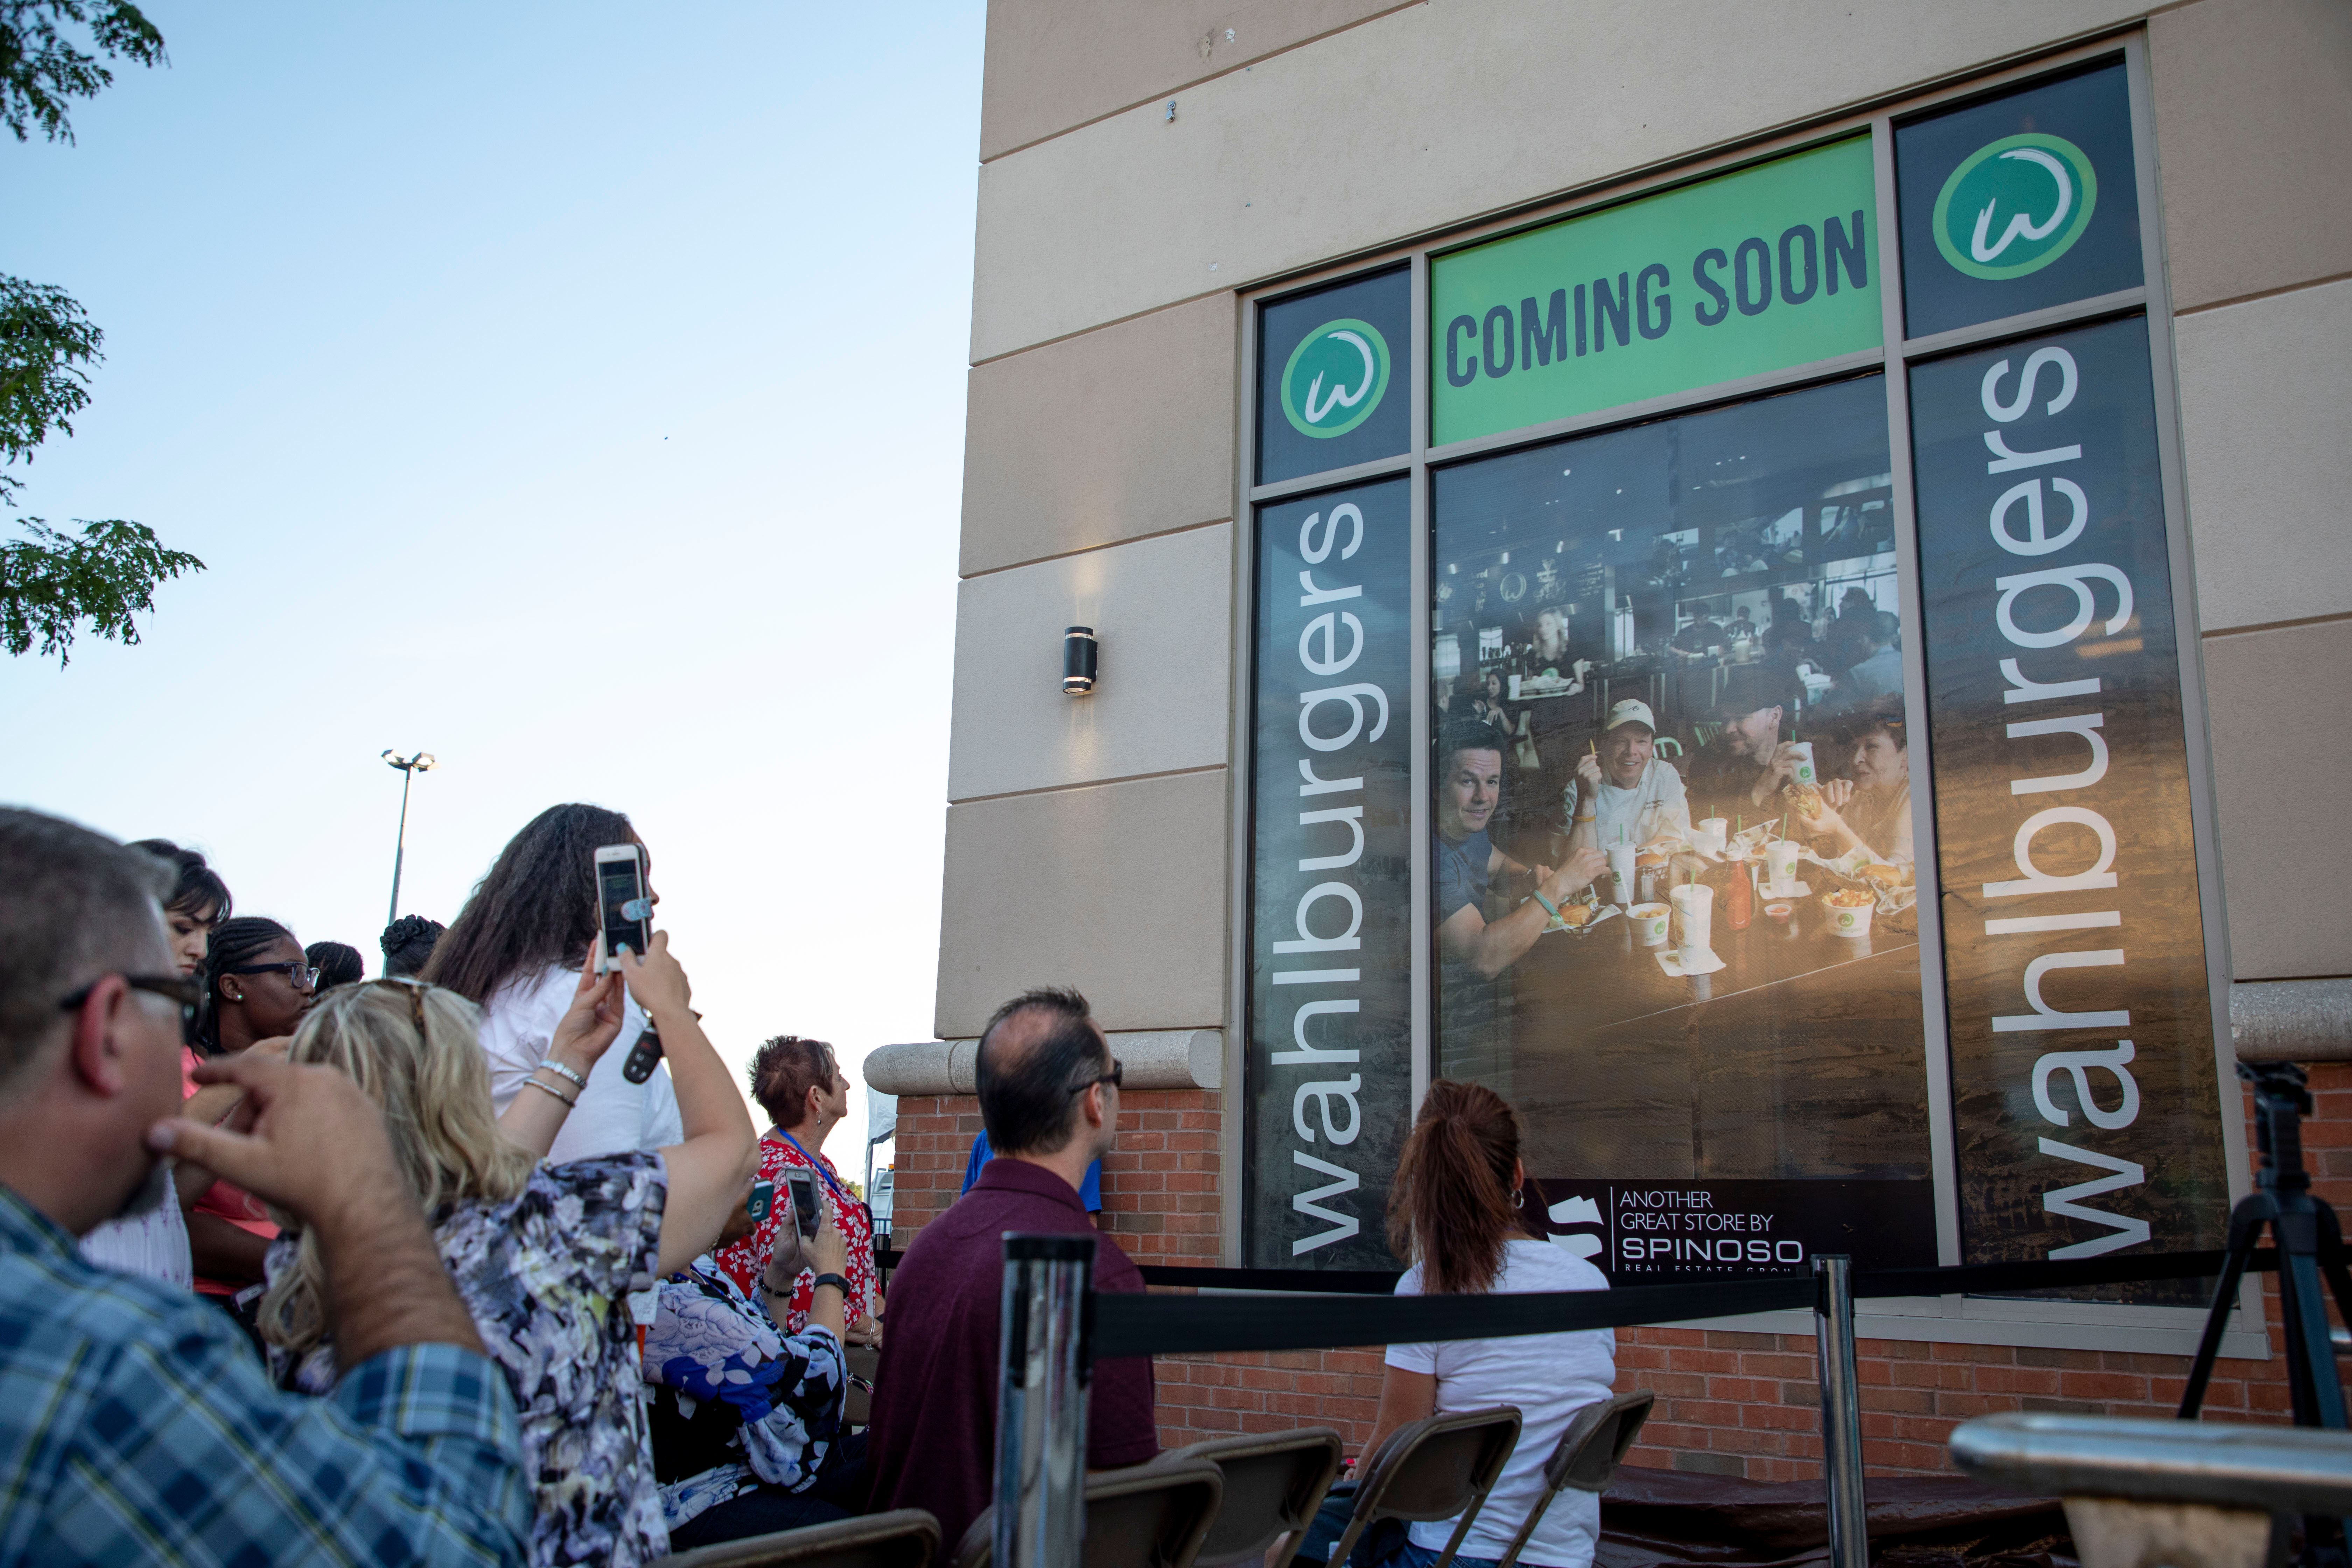 """<p>The location is set to open in a vacant 3,912-square-foot site between Barnes & Noble, Bar Louie, and across from Mo Pete's Sports Retreat in the mall's Outdoor Village.</p> <p>It marks the fourth Wahlburgers location set for Michigan.</p> <p>The first Wahlburgers in Michigan <a href=""""https://www.mlive.com/food/index.ssf/2016/08/step_inside_michigans_first_wa.html"""">opened in Detroit</a> in August 2016, with <a href=""""https://www.mlive.com/food/index.ssf/2018/04/michigans_second_wahlburgers_i.html"""">a second location</a> opening April 2018 in Taylor. Another location is <a href=""""https://www.mlive.com/business/detroit/index.ssf/2017/10/mark_wahlberg_reveals_new_mich.html"""">in the works</a> in Royal Oak.</p>"""